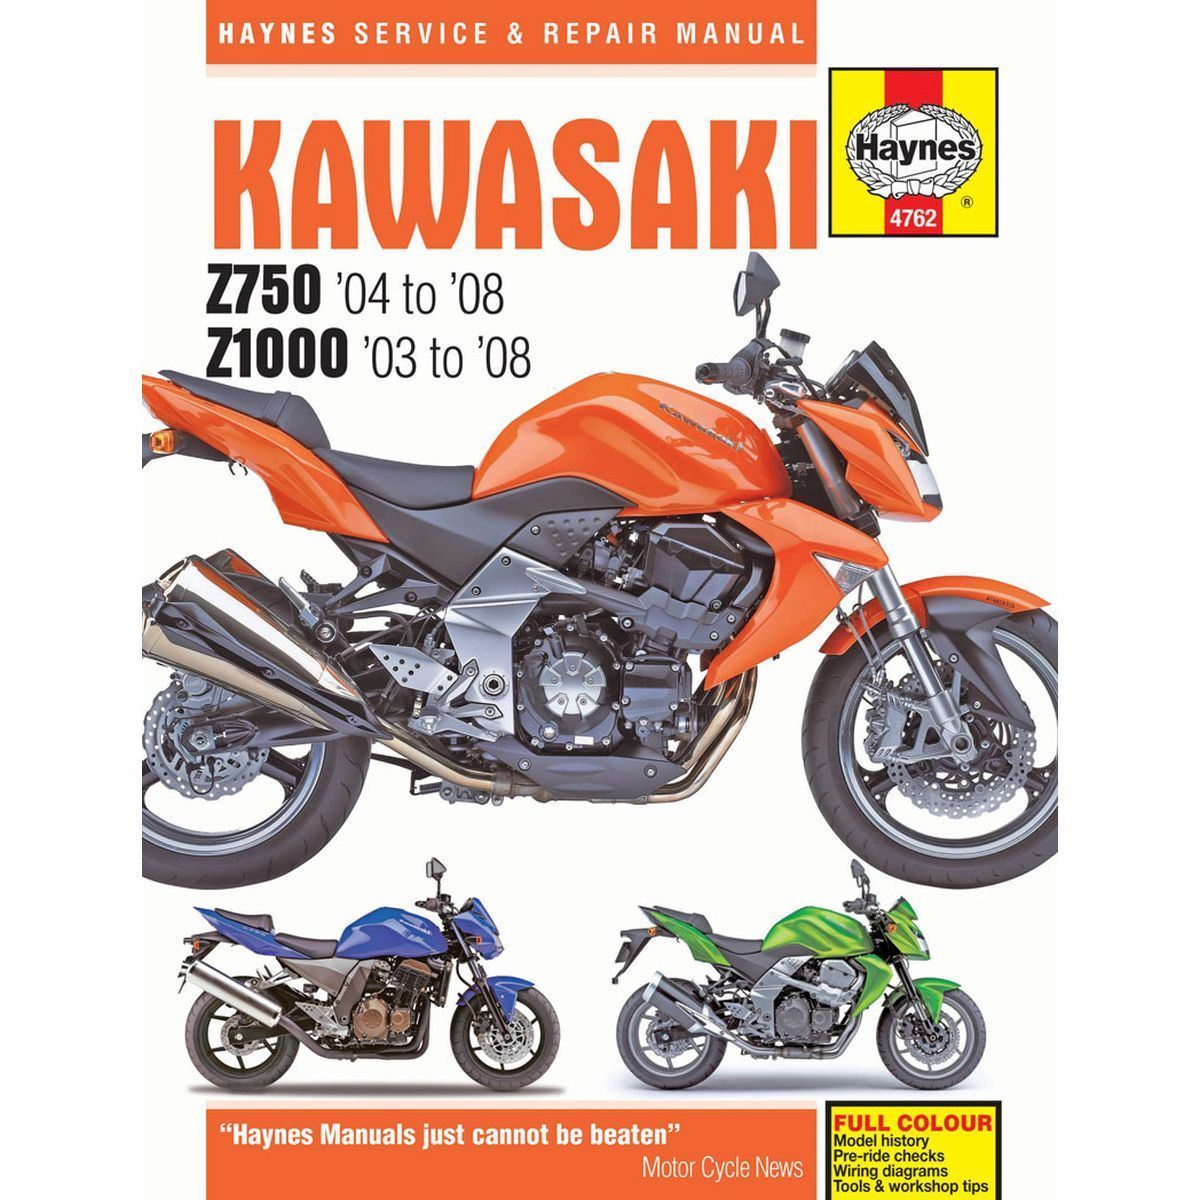 HAYNES MANUAL: KAWASAKI Z750 ZR750 Z1000 ZR1000 2003-2008